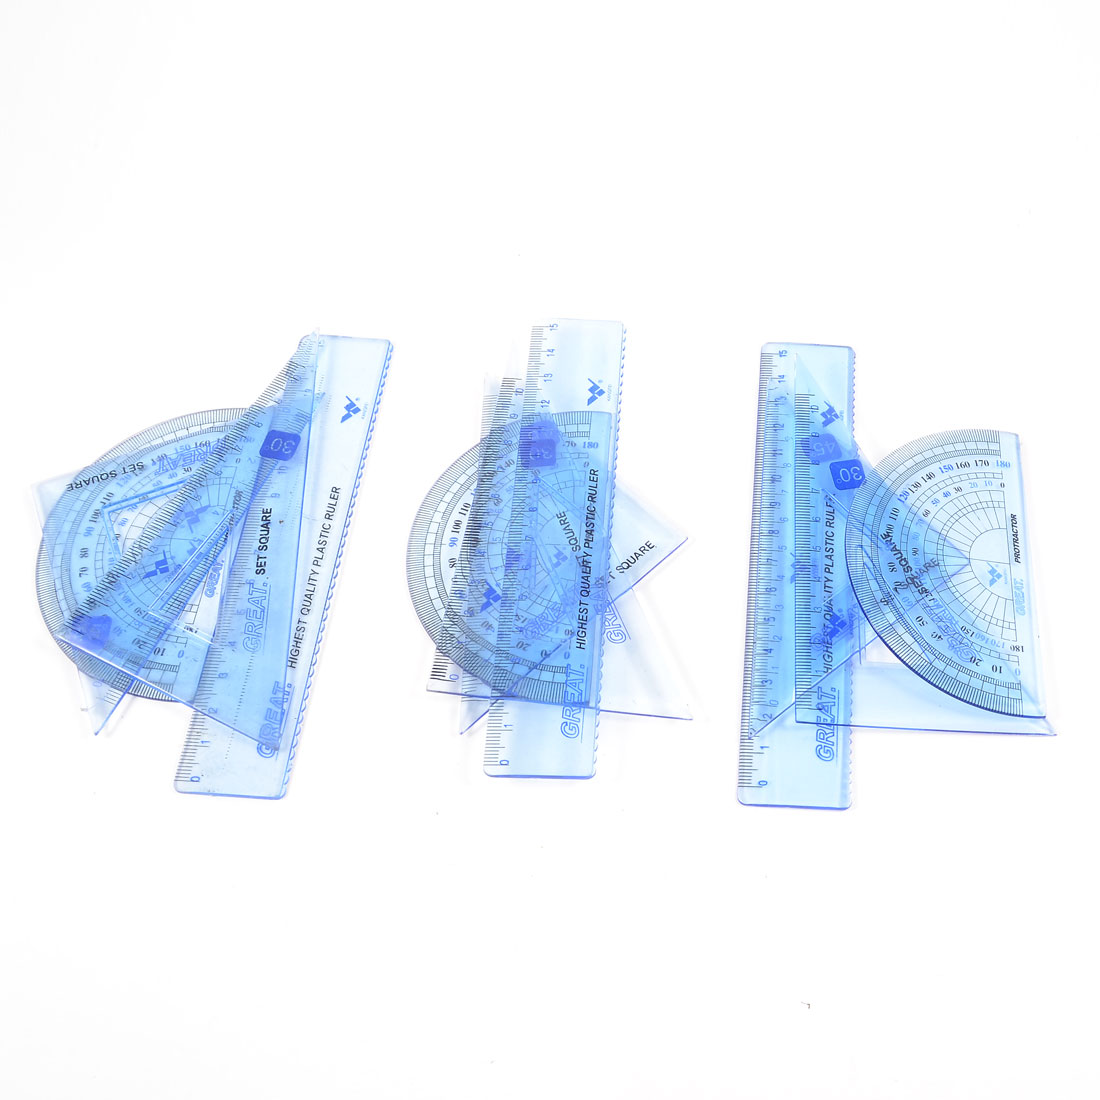 3 Sets 4 in 1 Plastic Clear Blue Protracto 15 cm Ruler Combination Set for Students